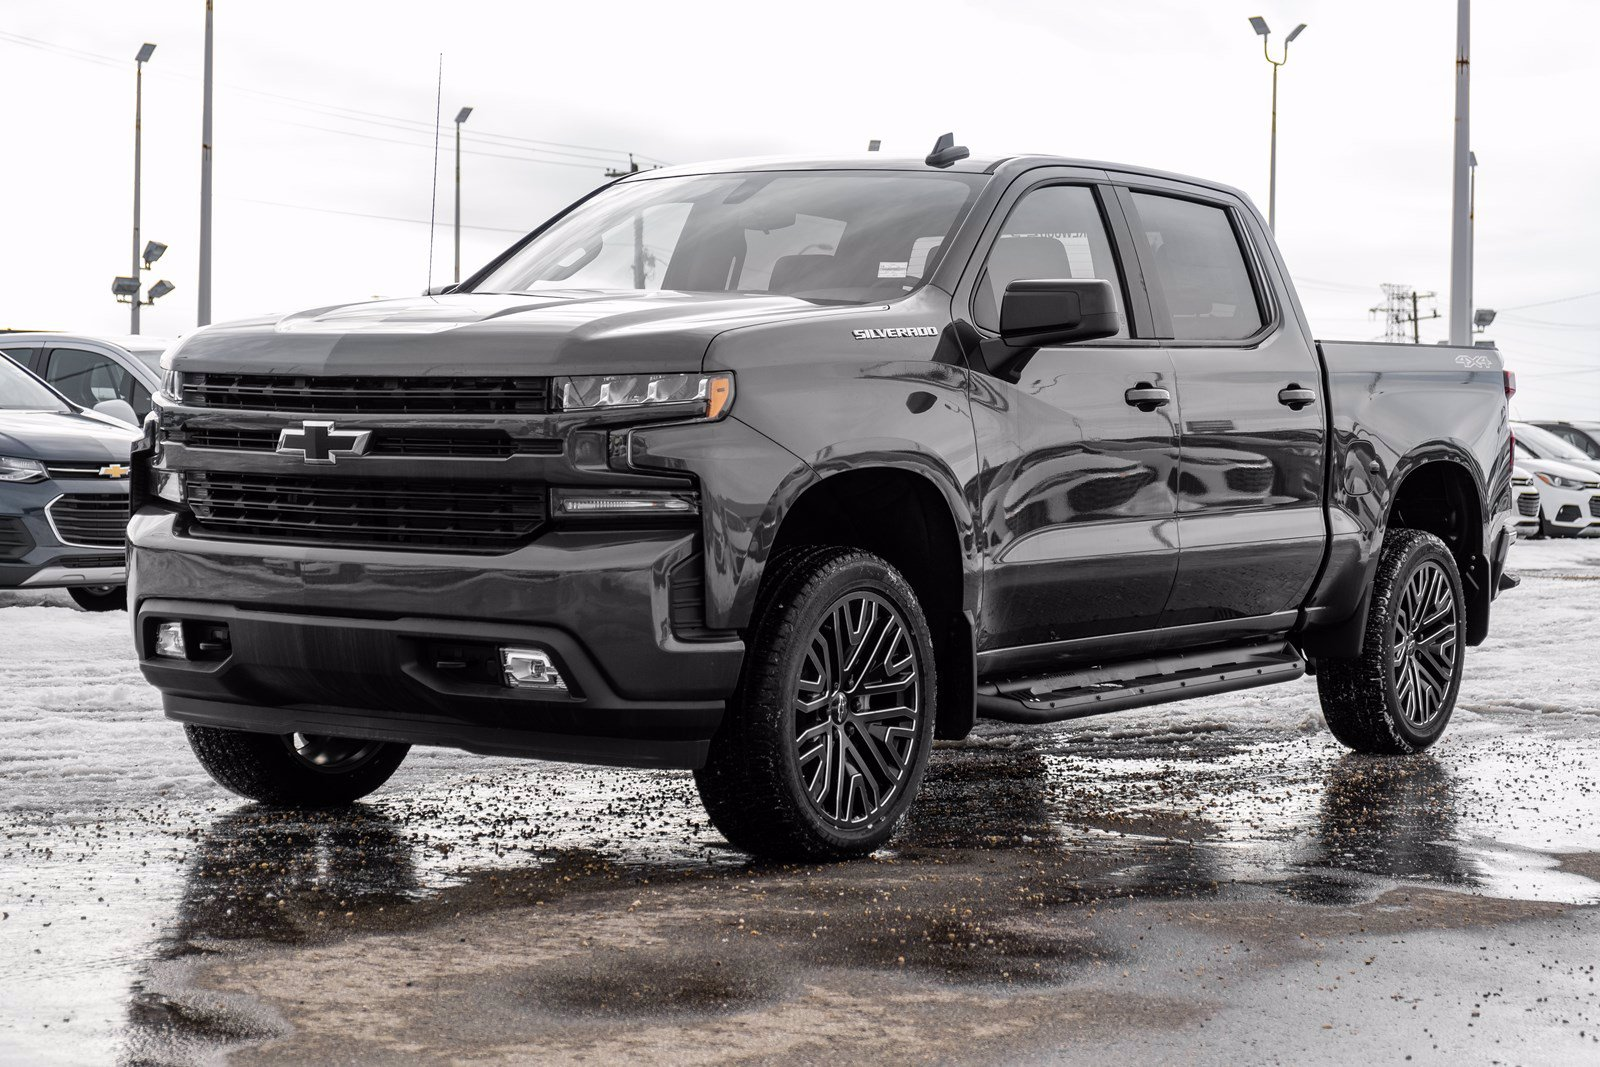 New 2019 Chevrolet Silverado 1500 RST | Perf. Exhaust, 2in Level, Tonneau Cover 4WD Crew Cab Pickup